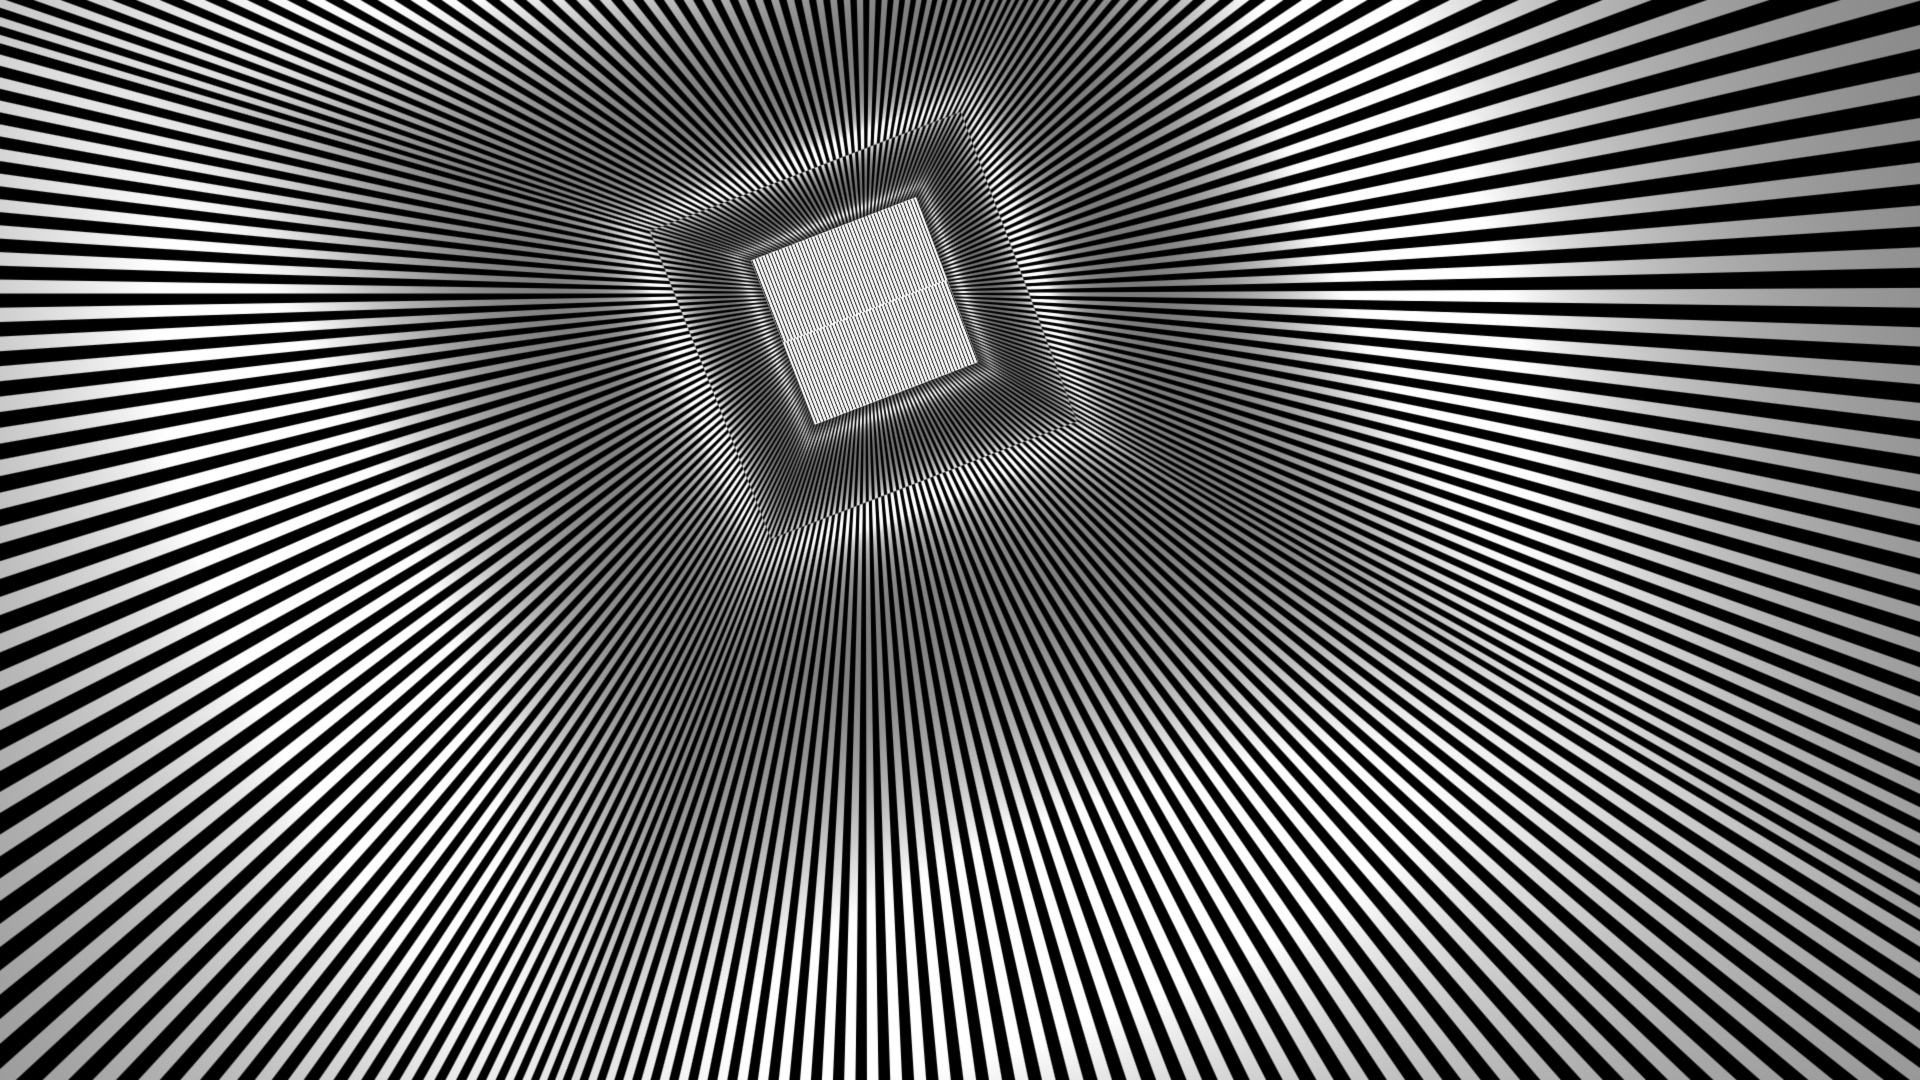 x coloring furthermore  moreover  as well i coloring moreover black and white abstract desktop background additionally 01f5b08b52060b990554d580576003a0 also  also slimer by martyntranter d5bv0ix likewise  furthermore hall 20pass 20exam additionally . on illusions coloring pages printable